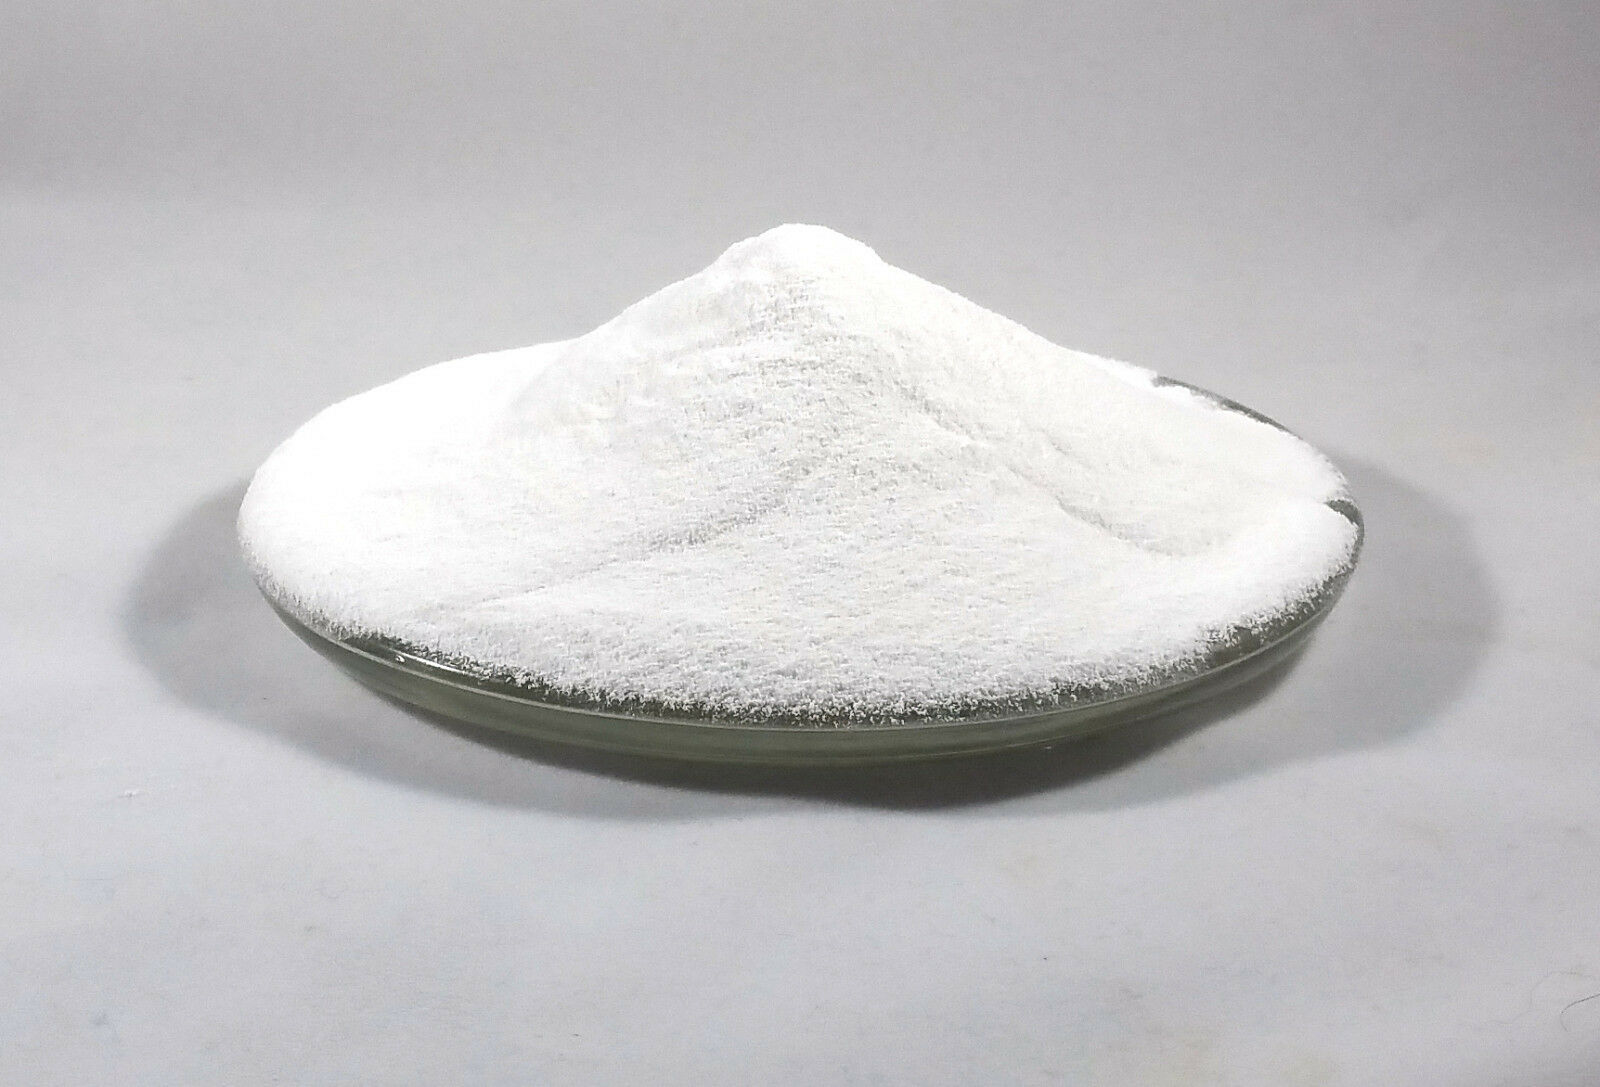 50/100/500g Hyaluronic Acid Powder, Sodium Hyaluronate, High Quality Raw Material, Low Molecular Weight 80 KDa ,beauty